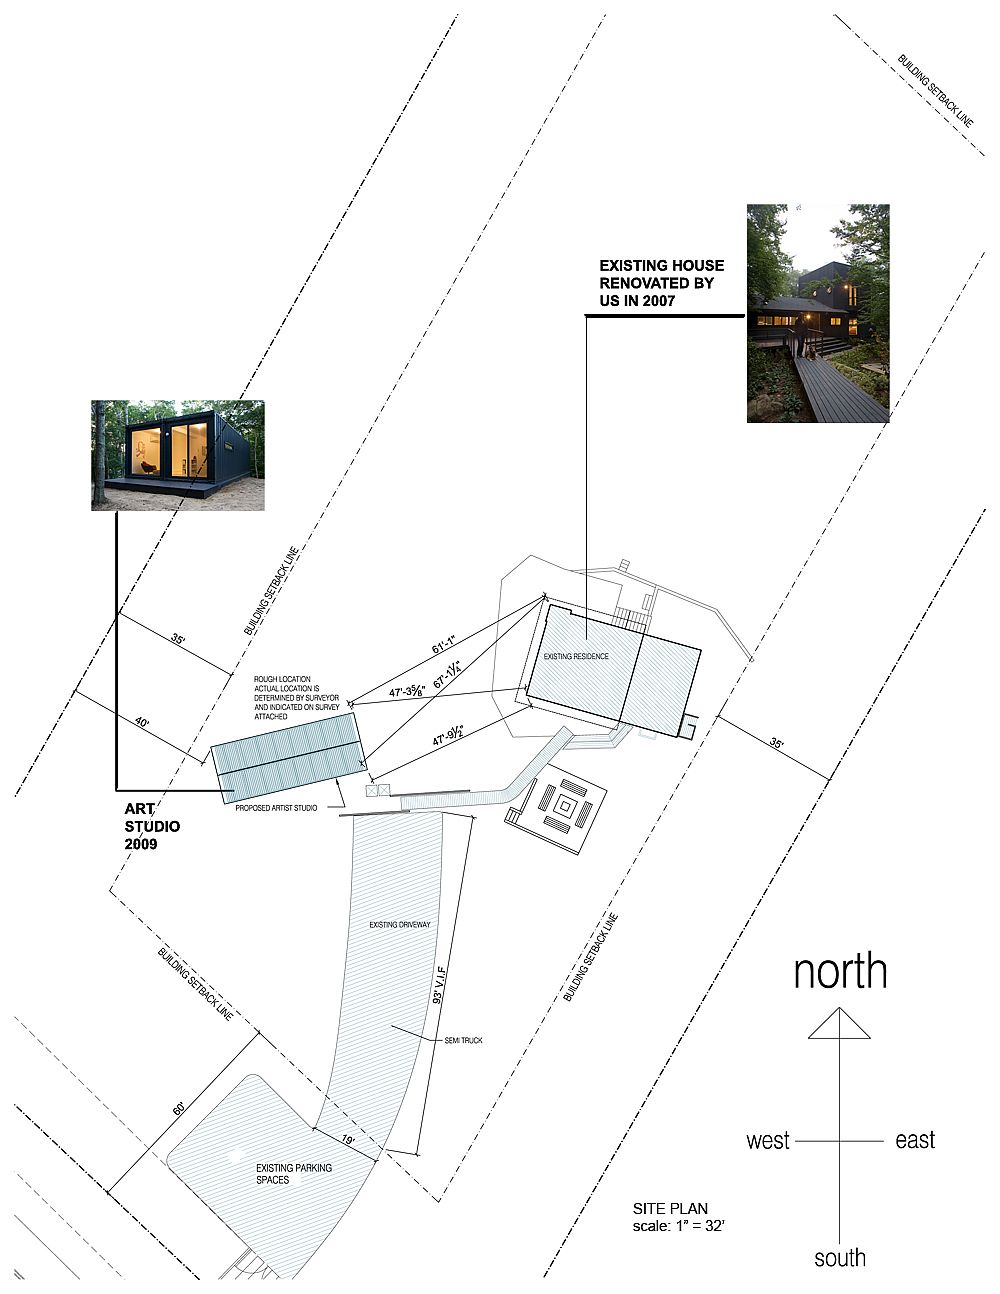 Design plan of the Art Studio in context of the home and woods all around